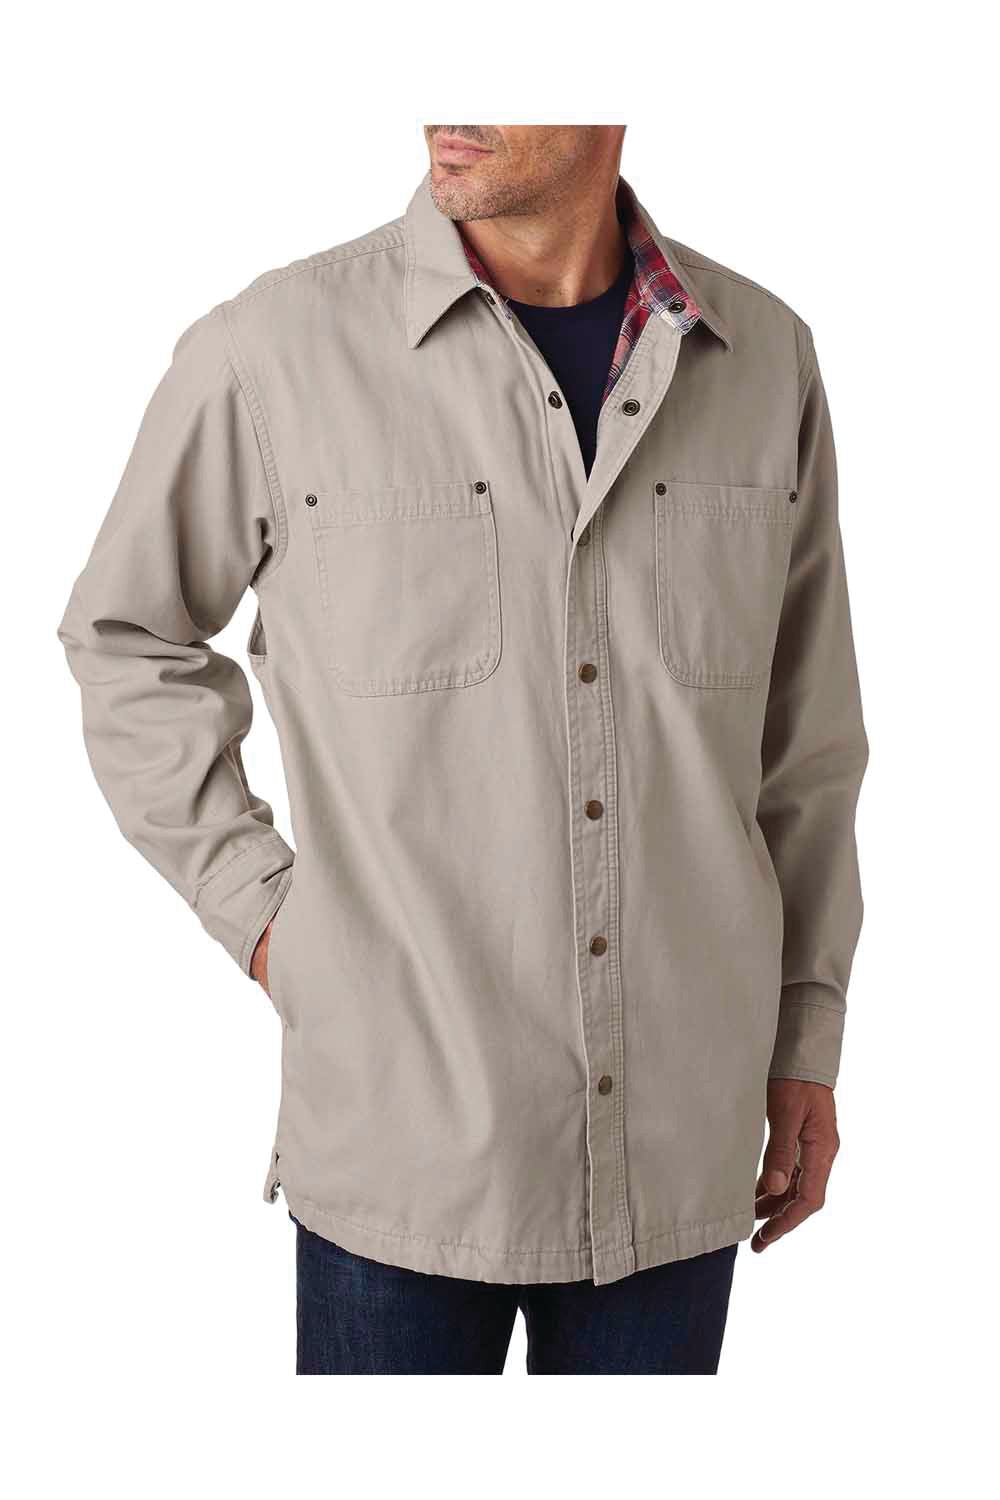 Backpacker BP7006 Mens Canvas Button Down Shirt Jacket Stone Brown Front